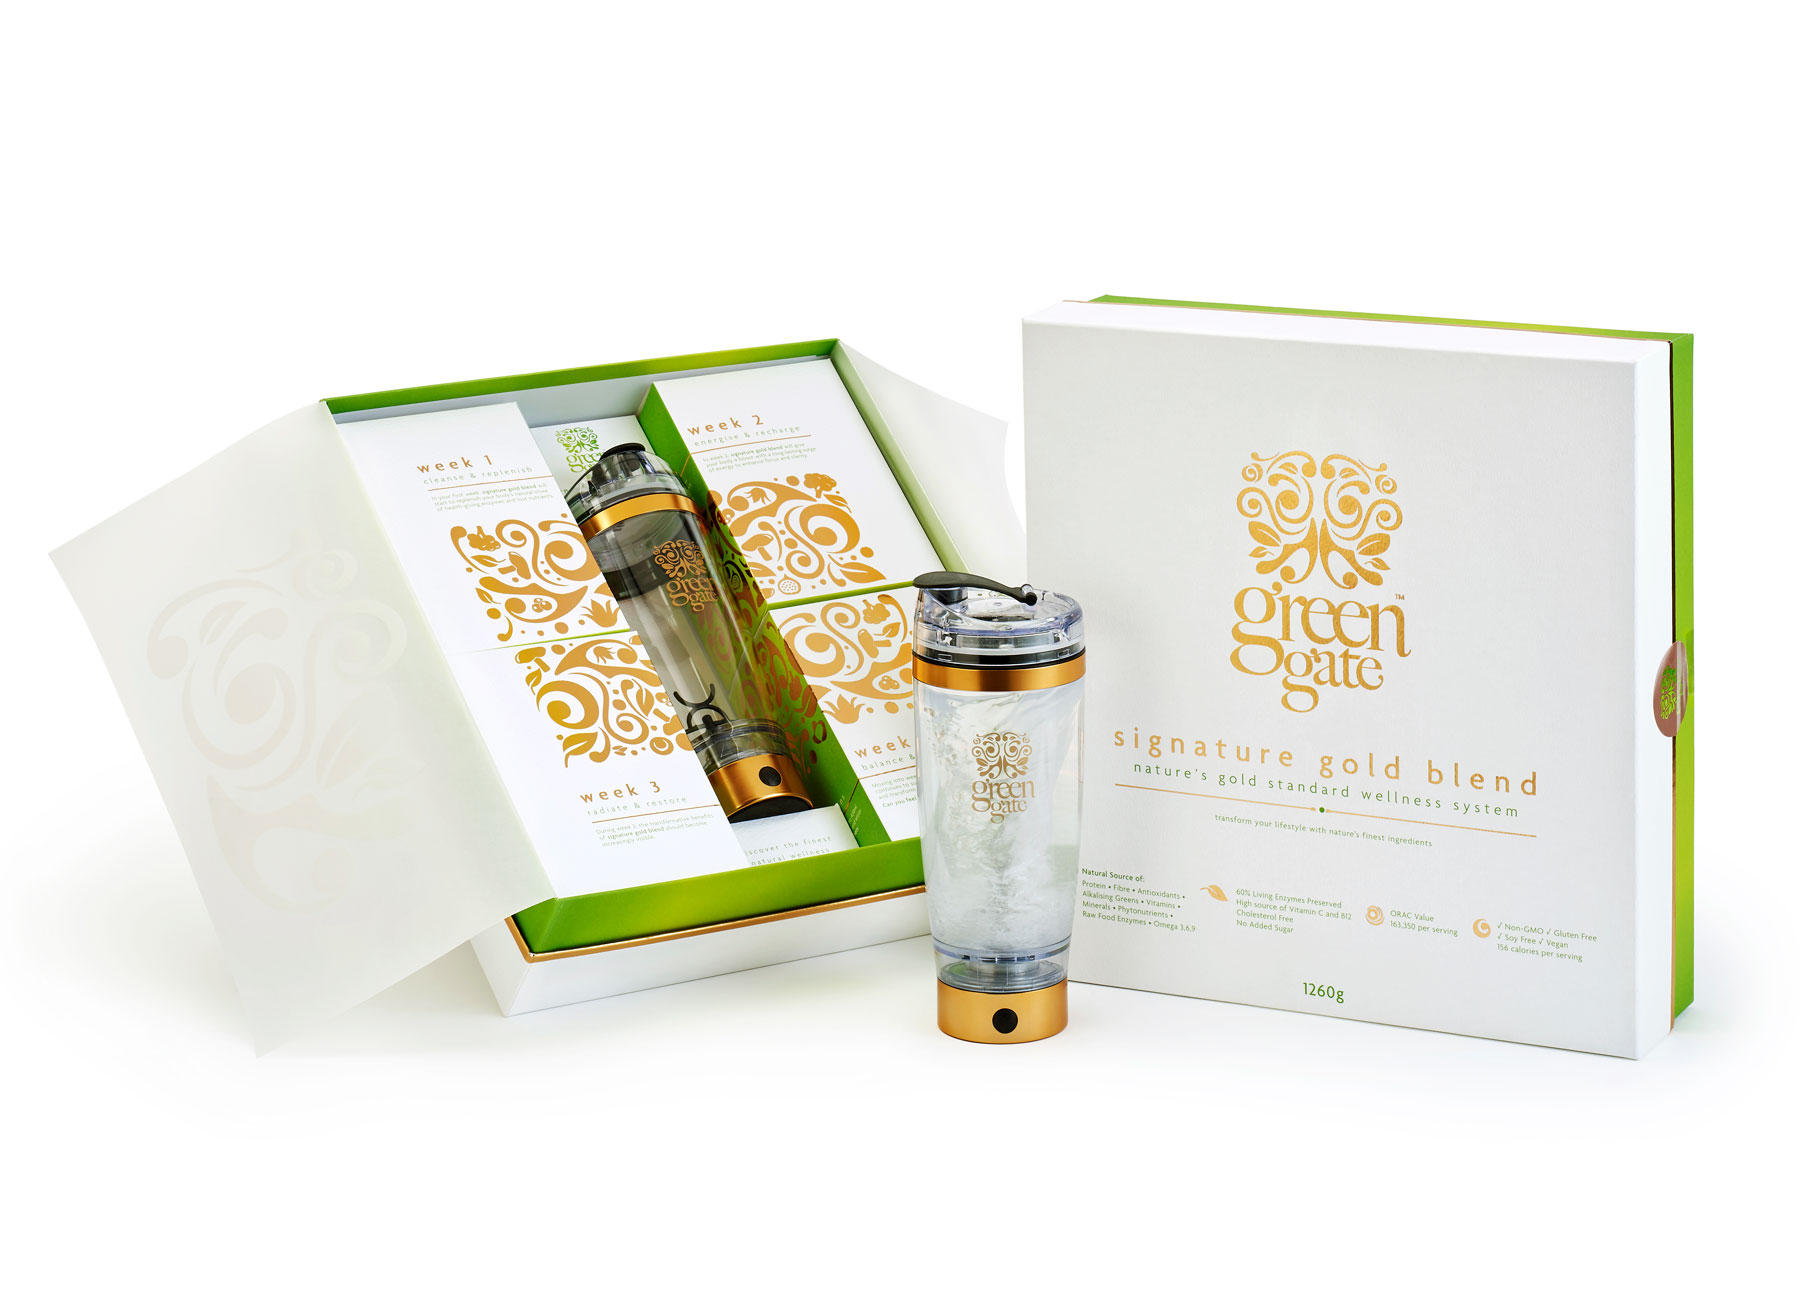 Green Gate Signature Gold Blend box